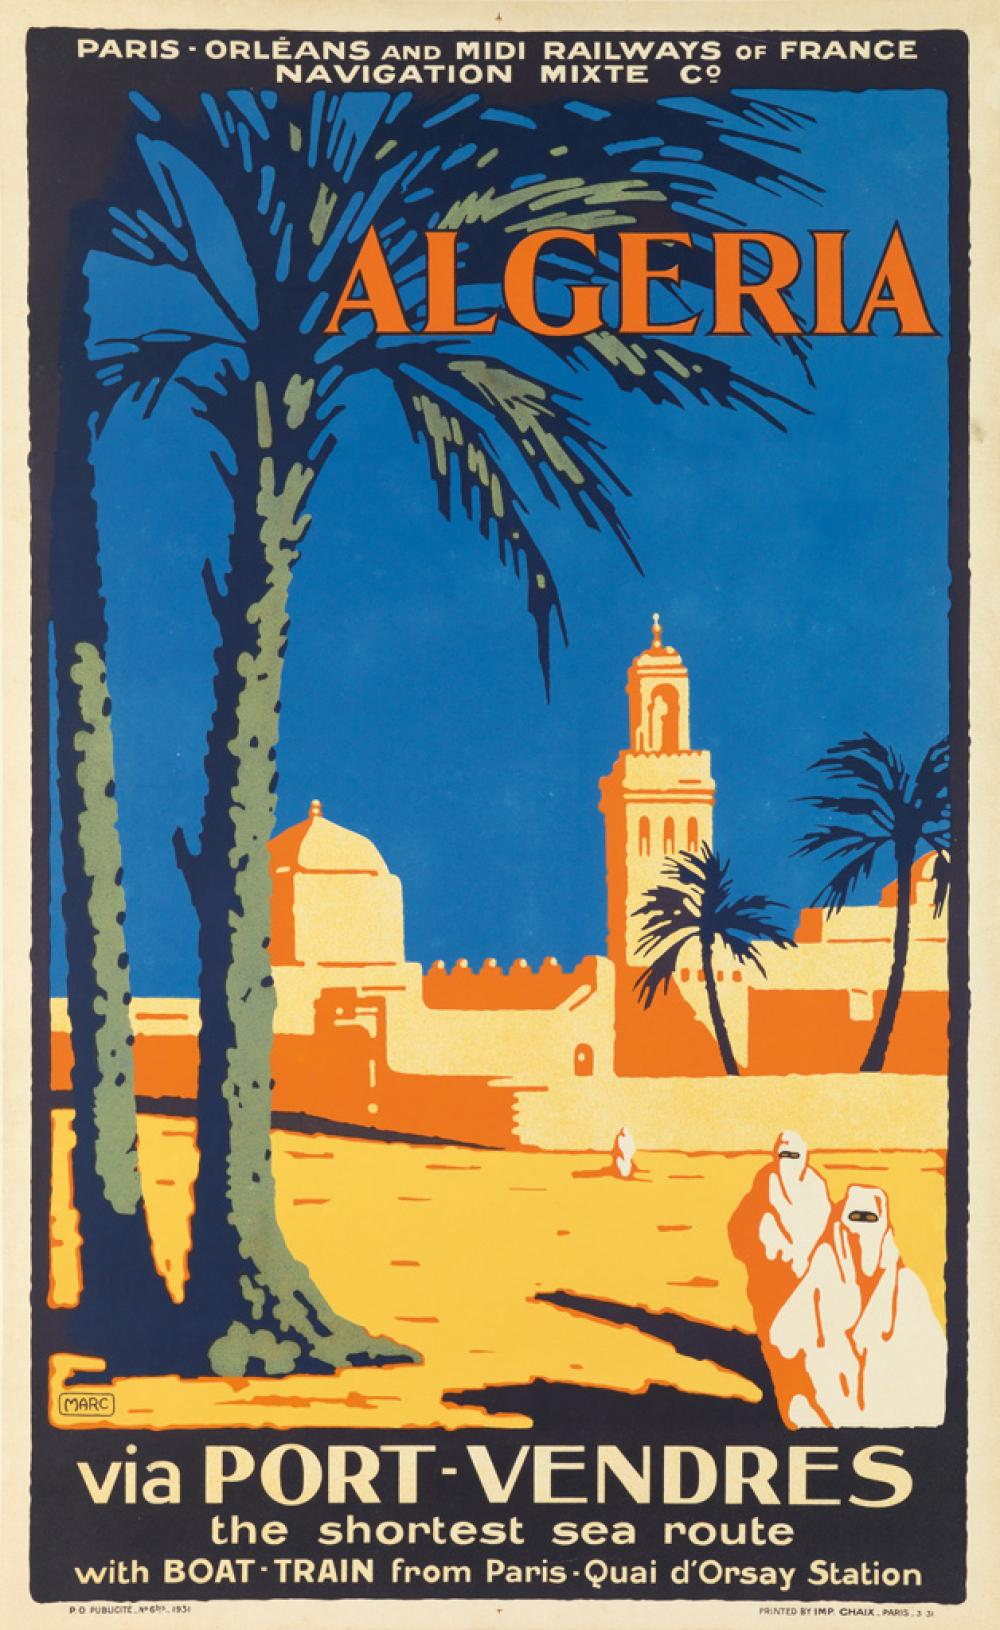 MARC (DATES UNKNOWN). ALGERIA VIA PORT - VENDRES. 1931. 39x24 inches, 100x62 cm. Chaix, Paris.